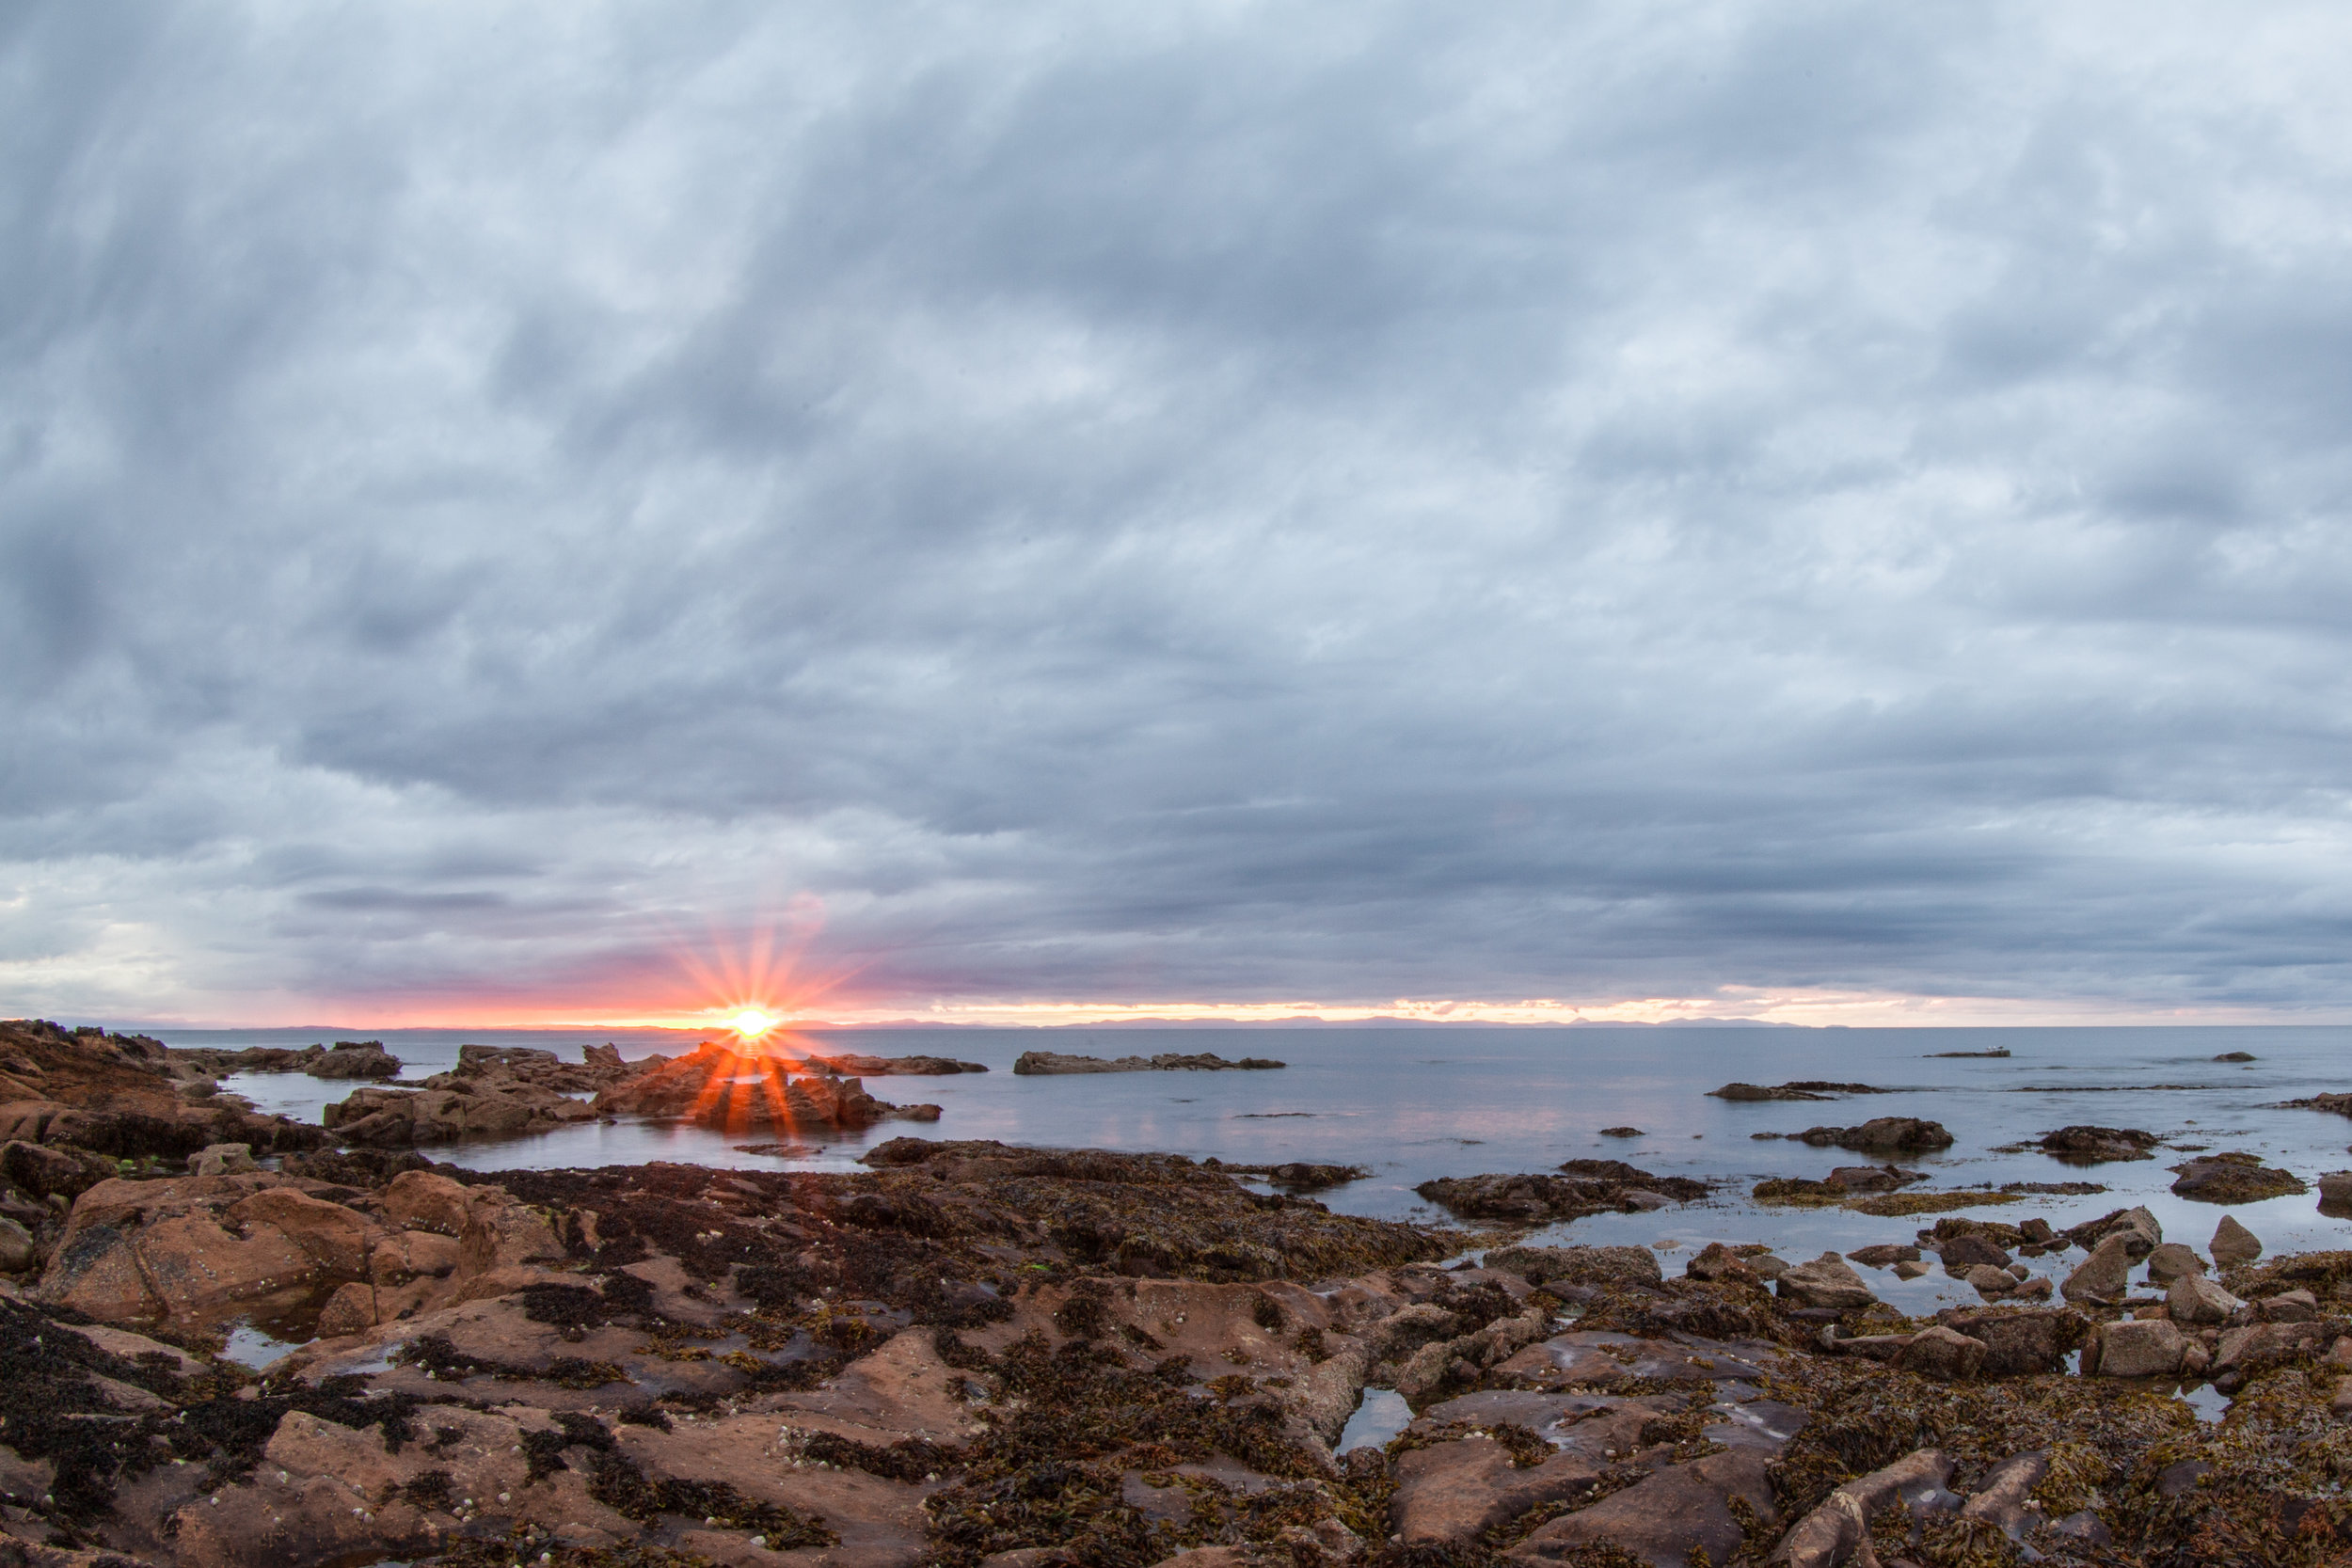 A wide angle sunset photo from the coastline of Scotland.